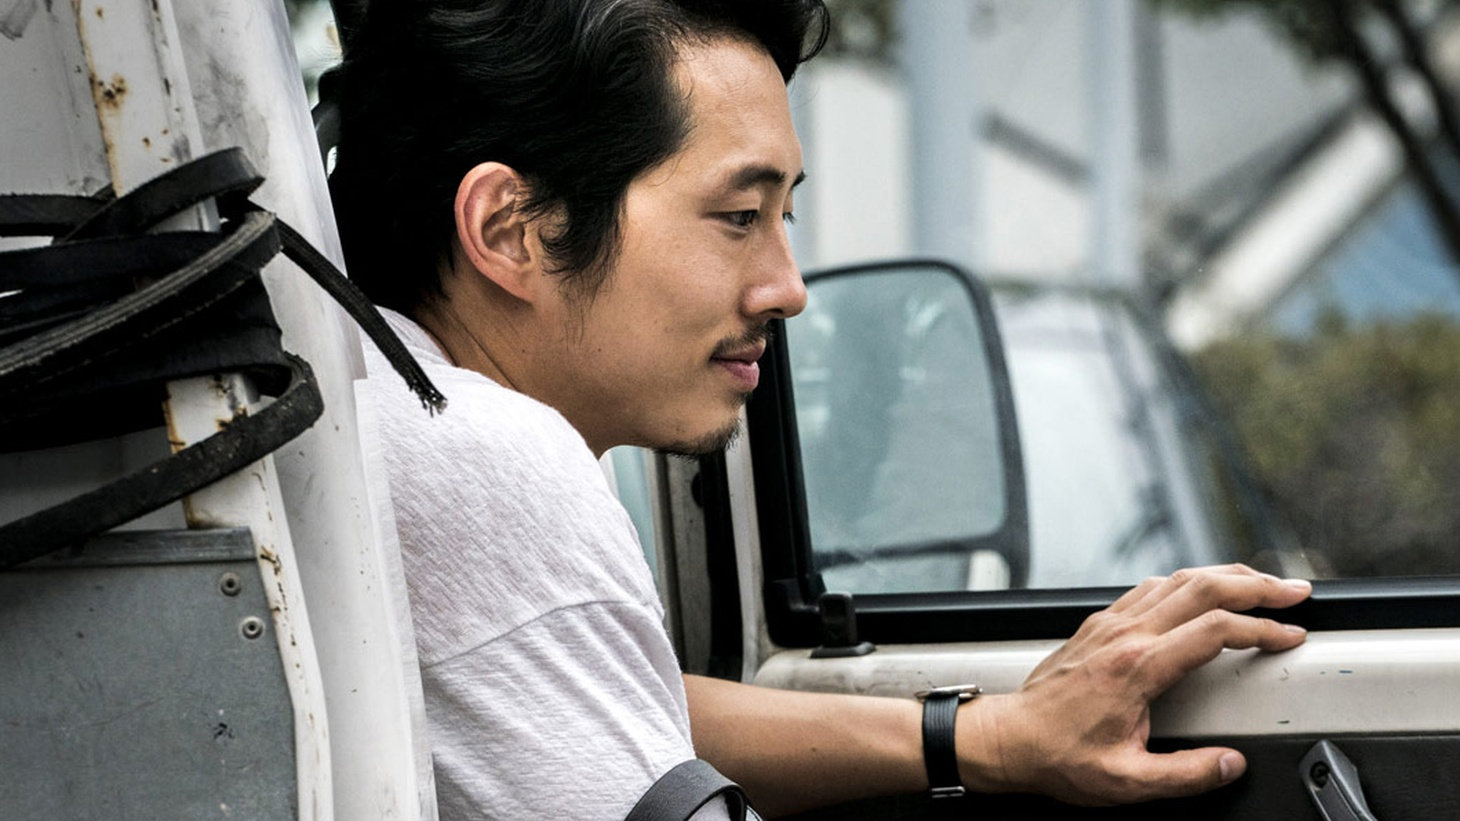 Actor Steven Yeun in BURNING, directed by Lee Chang-dong.